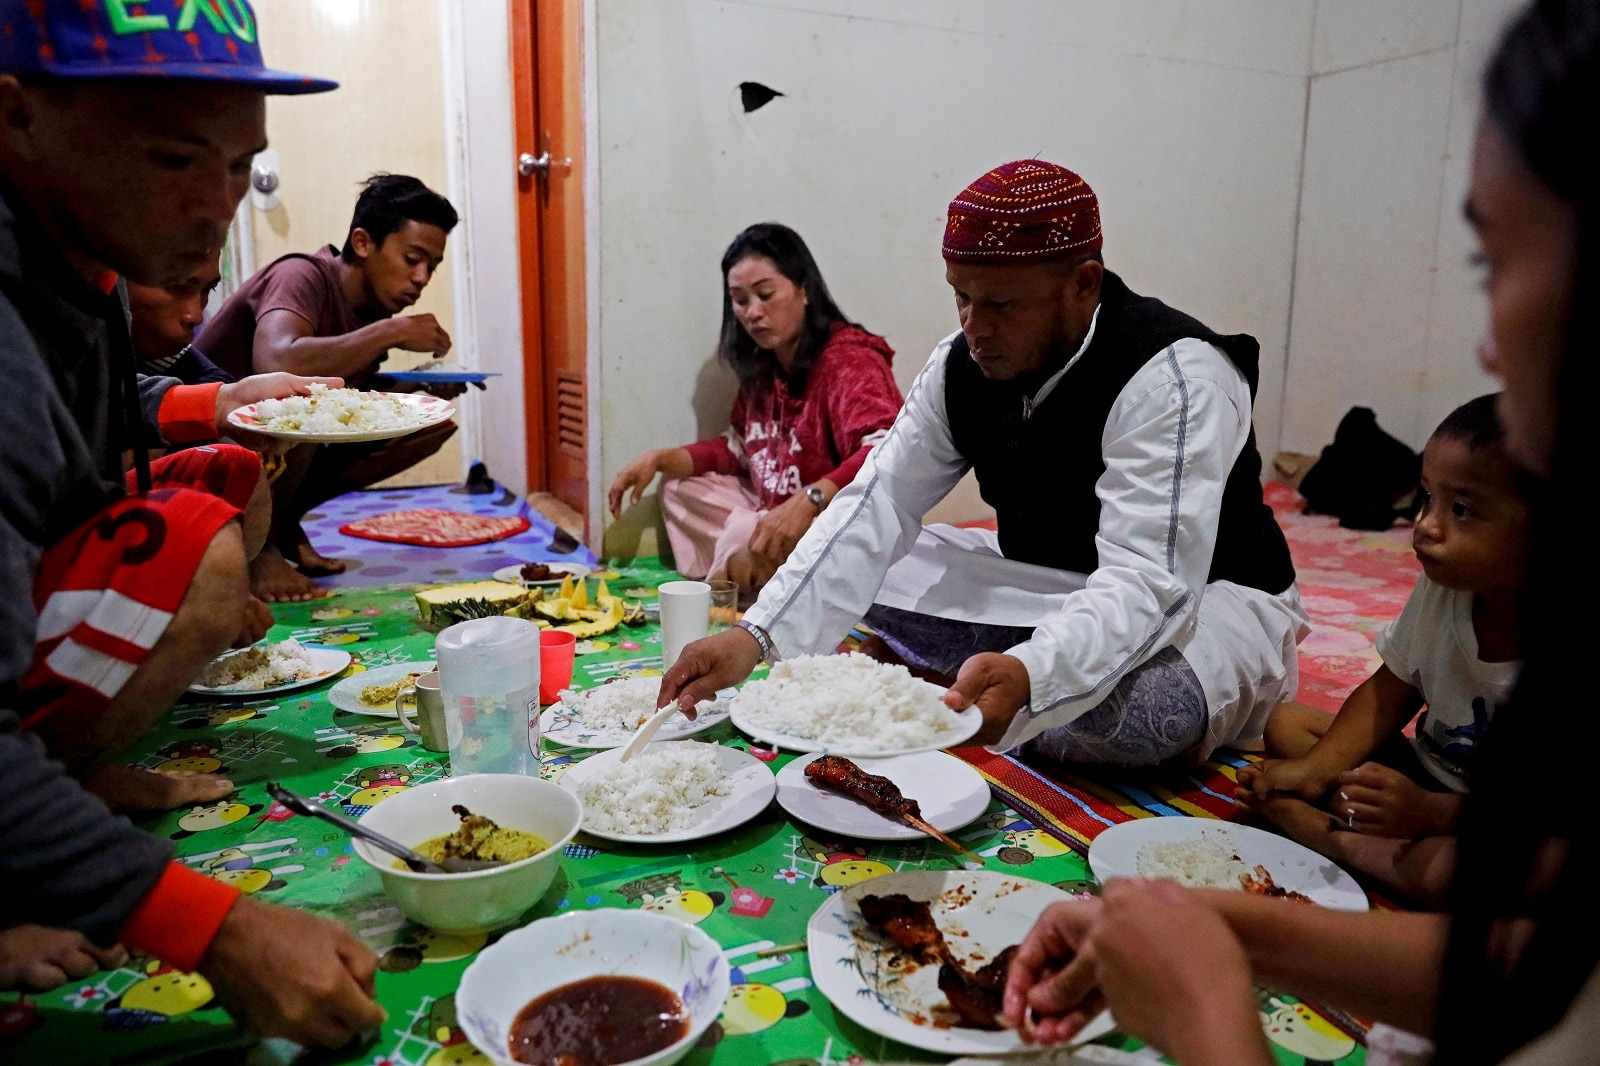 Mohammad Ali Acampong, 42, and his family breakfast with rice, chicken, and pineapples during ramadan in their temporary shelter in Marawi City, Lanao del Sur province, Philippines, May 12, 2019. REUTERS/Eloisa Lopez